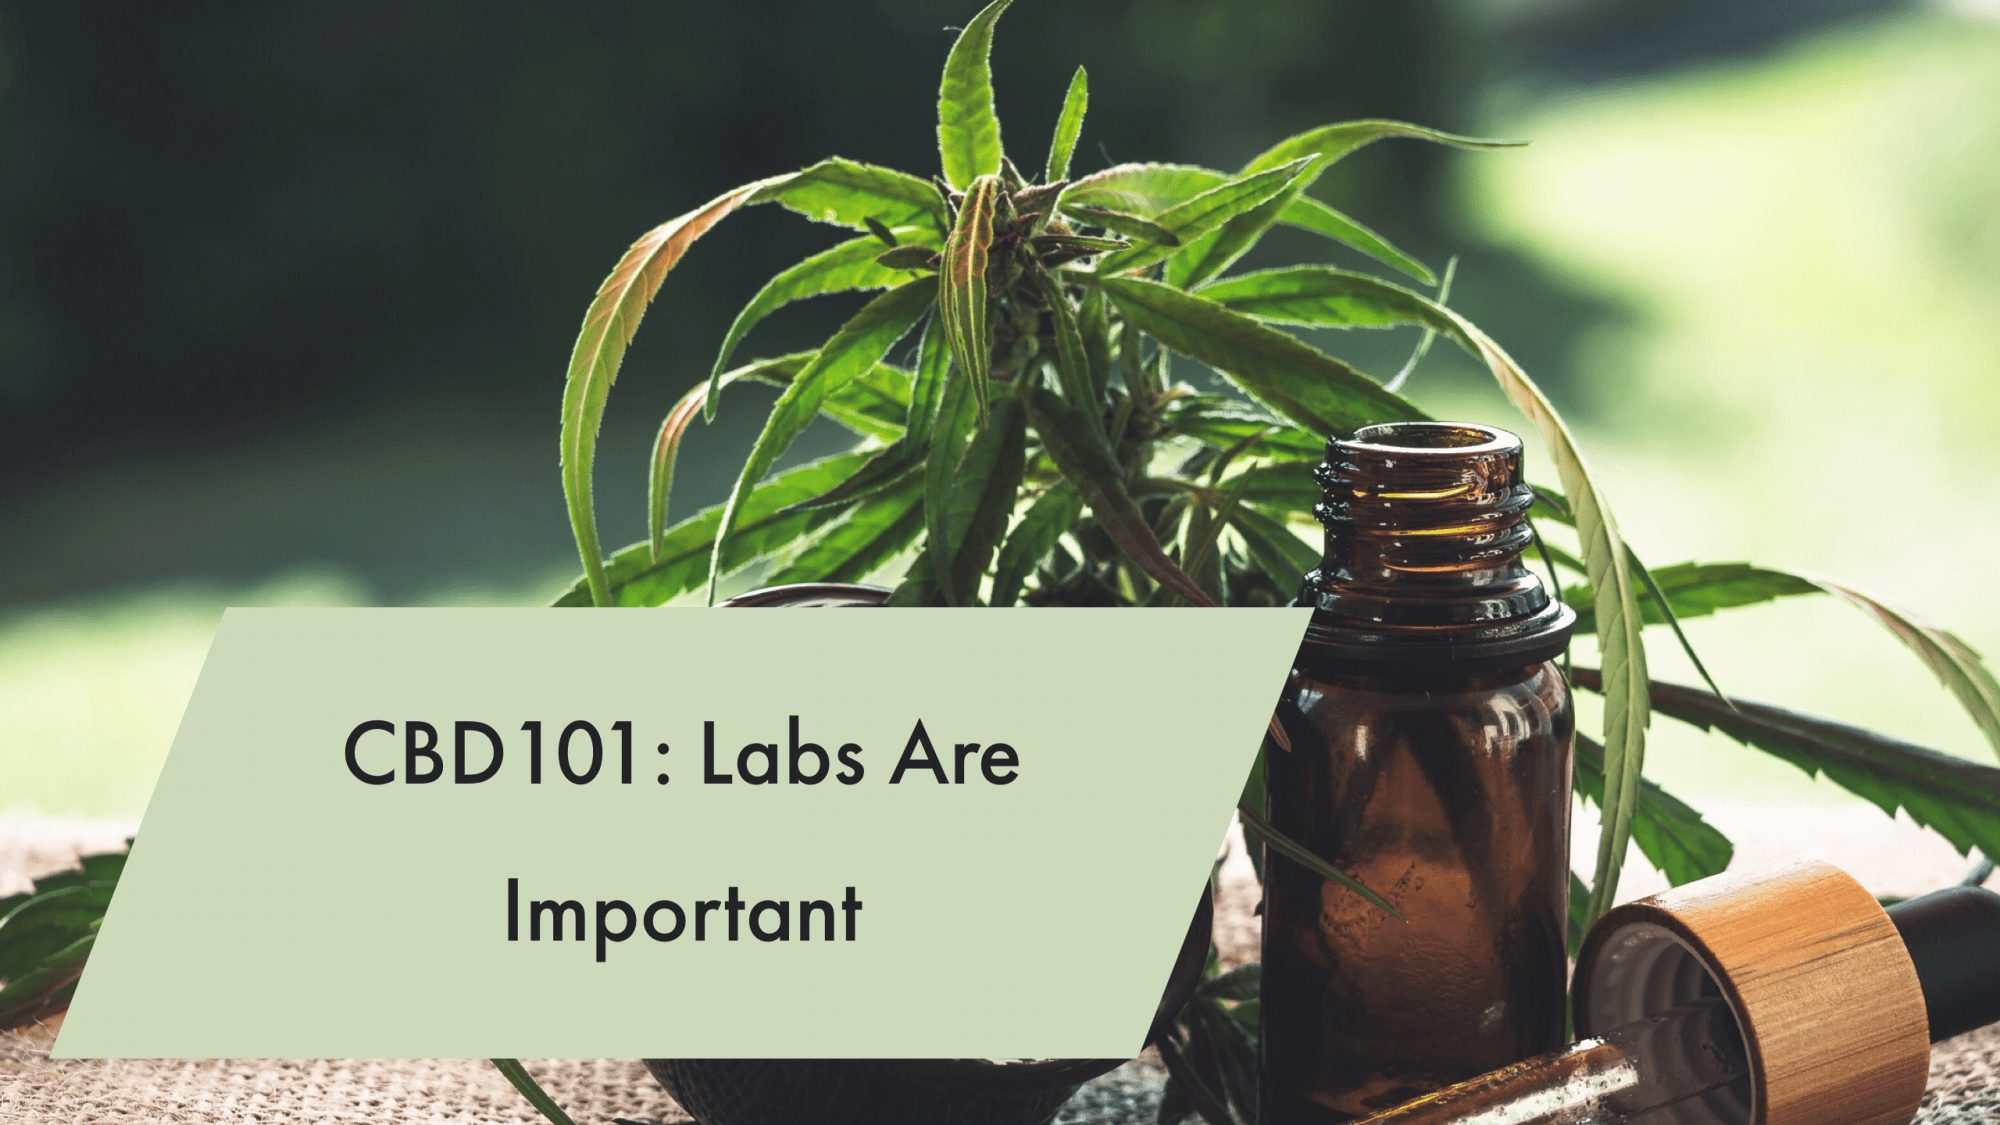 You are currently viewing CBD101: CBD Labs Are Important